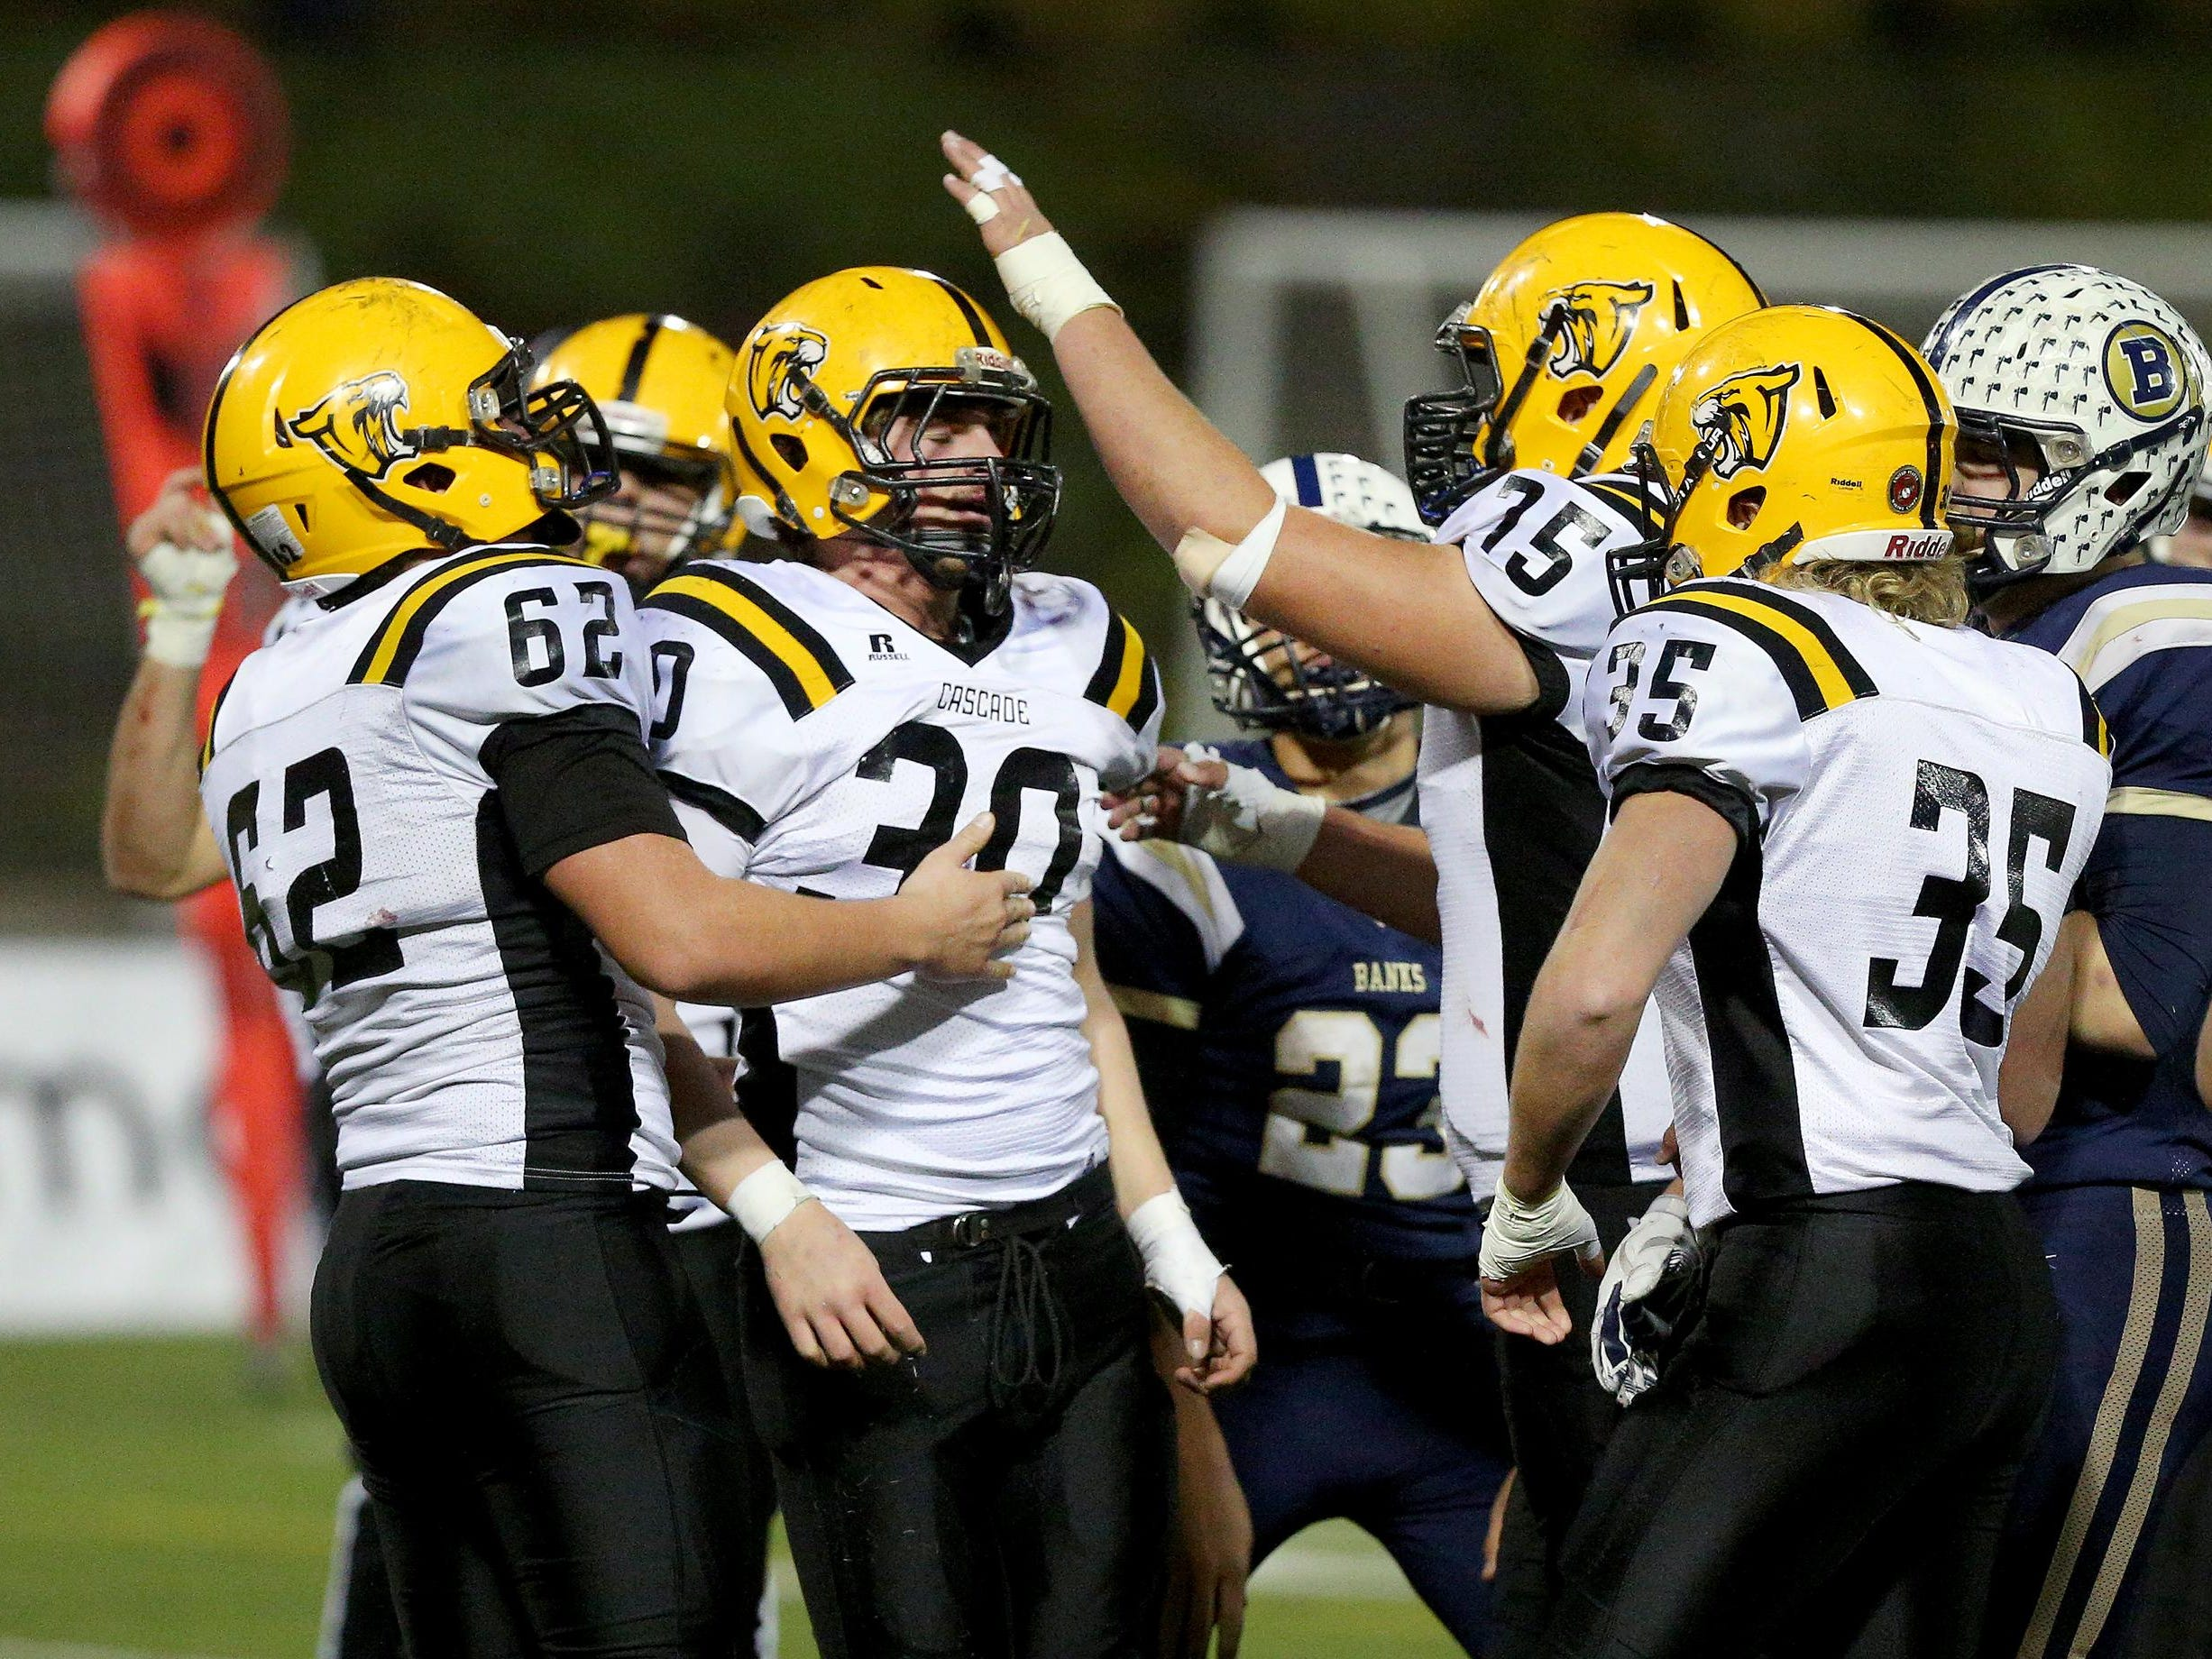 Cascade running back Garrett Coffey (30) is congratulated by his teammates after scoring a touchdown against Banks during the OSAA Class 4A state semifinals, Saturday, November 21, 2015, at Hillsboro Stadium in Hillsboro, Ore. Cascade won the game 42-21.